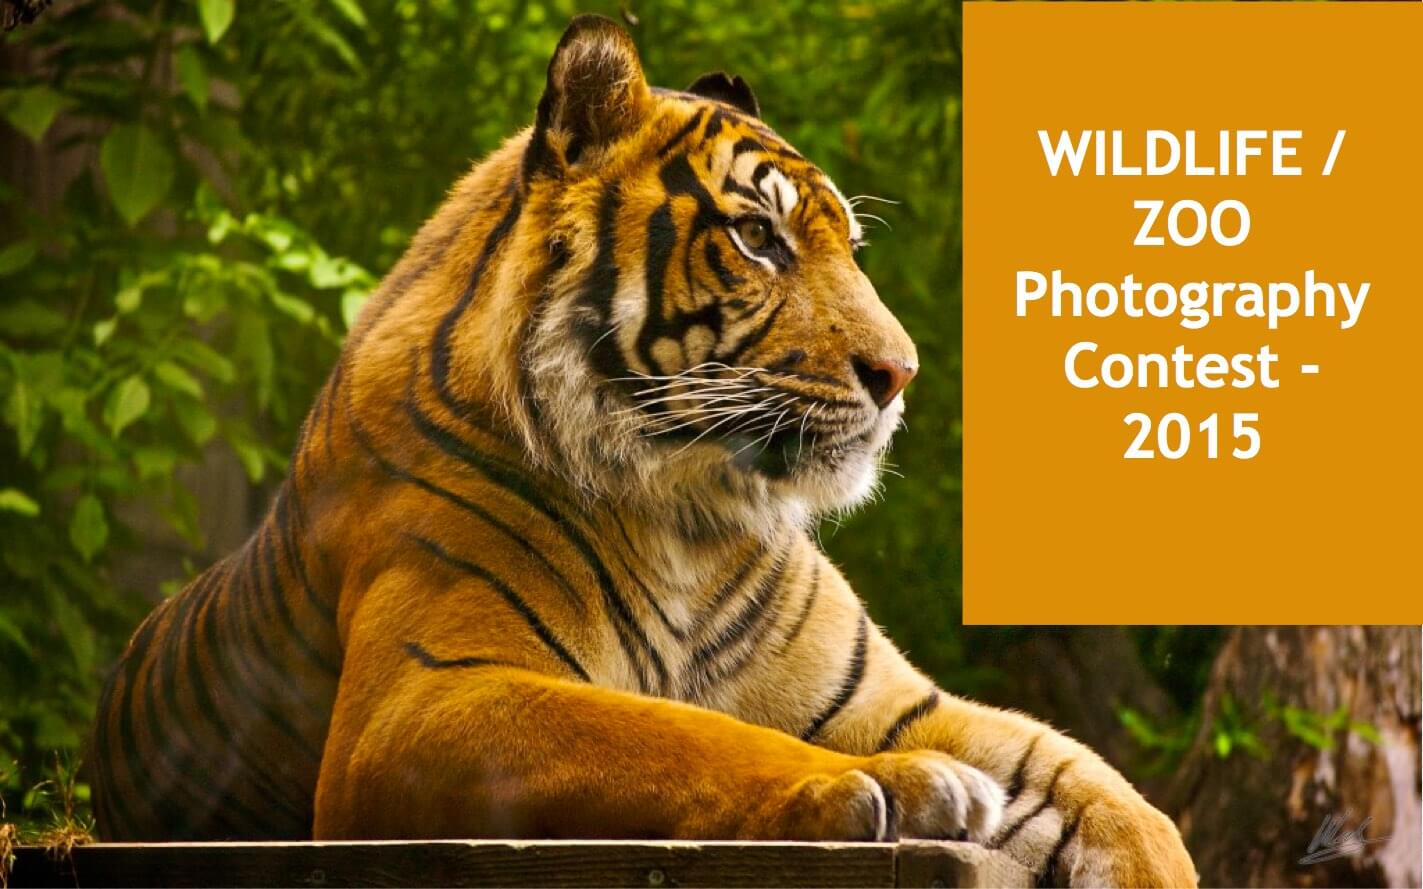 "Wildlife Zoo Photography Contest by Mysore Zoo - WildTrails of India - ""Aggregator App for Your Wildlife Trip"" (We are an Aggregator App, bringing all of Indian wildlife & Nature resorts into one place to help YOU find your ideal destination/resort based on your personal preferences!! Will aggregate Wildlife/Nature Resorts, National parks, (bird & animal) Sanctuaries, Tiger & Elephant reserves, Organized photographic oriented wildlife tours, Camera, Lens & related equipment Rentals, Cab/Car Rentals, Photography Workshops, info about Indian Animals & birds, Tourist Guides and lot more. Currently we are covering Bandipur, Nagarhole (Kabini & Coorg), Coorg & Bird Sanctuaries close to Bangalore.) PS1: The app will be released soon and will be a paid app. Please register for our Beta program to qualify for a free app. PS2: Please be a responsible wildlife tourist; No littering, No sounds, No feeding, no getting down from the safari jeep, No calls, Phones to Silent mode or Airplane mode or Switch off. Remember we are visiting their home and when we are there, let's follow their rules."